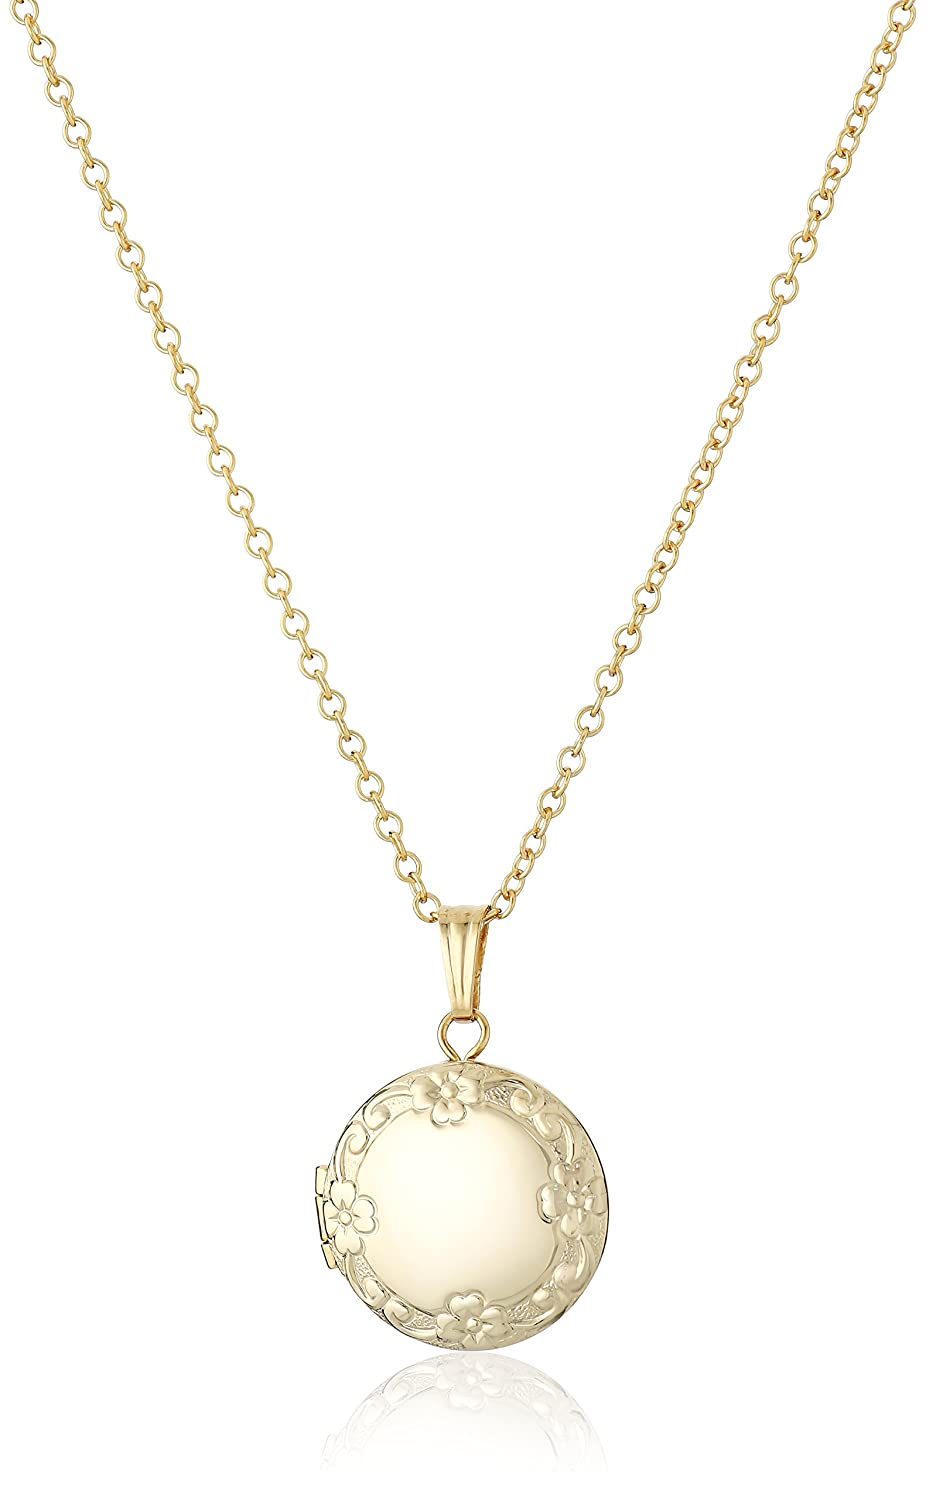 Children's 14k Gold-Filled Petite Embossed Edge Round Locket Necklace Marathon Company AMZA923M